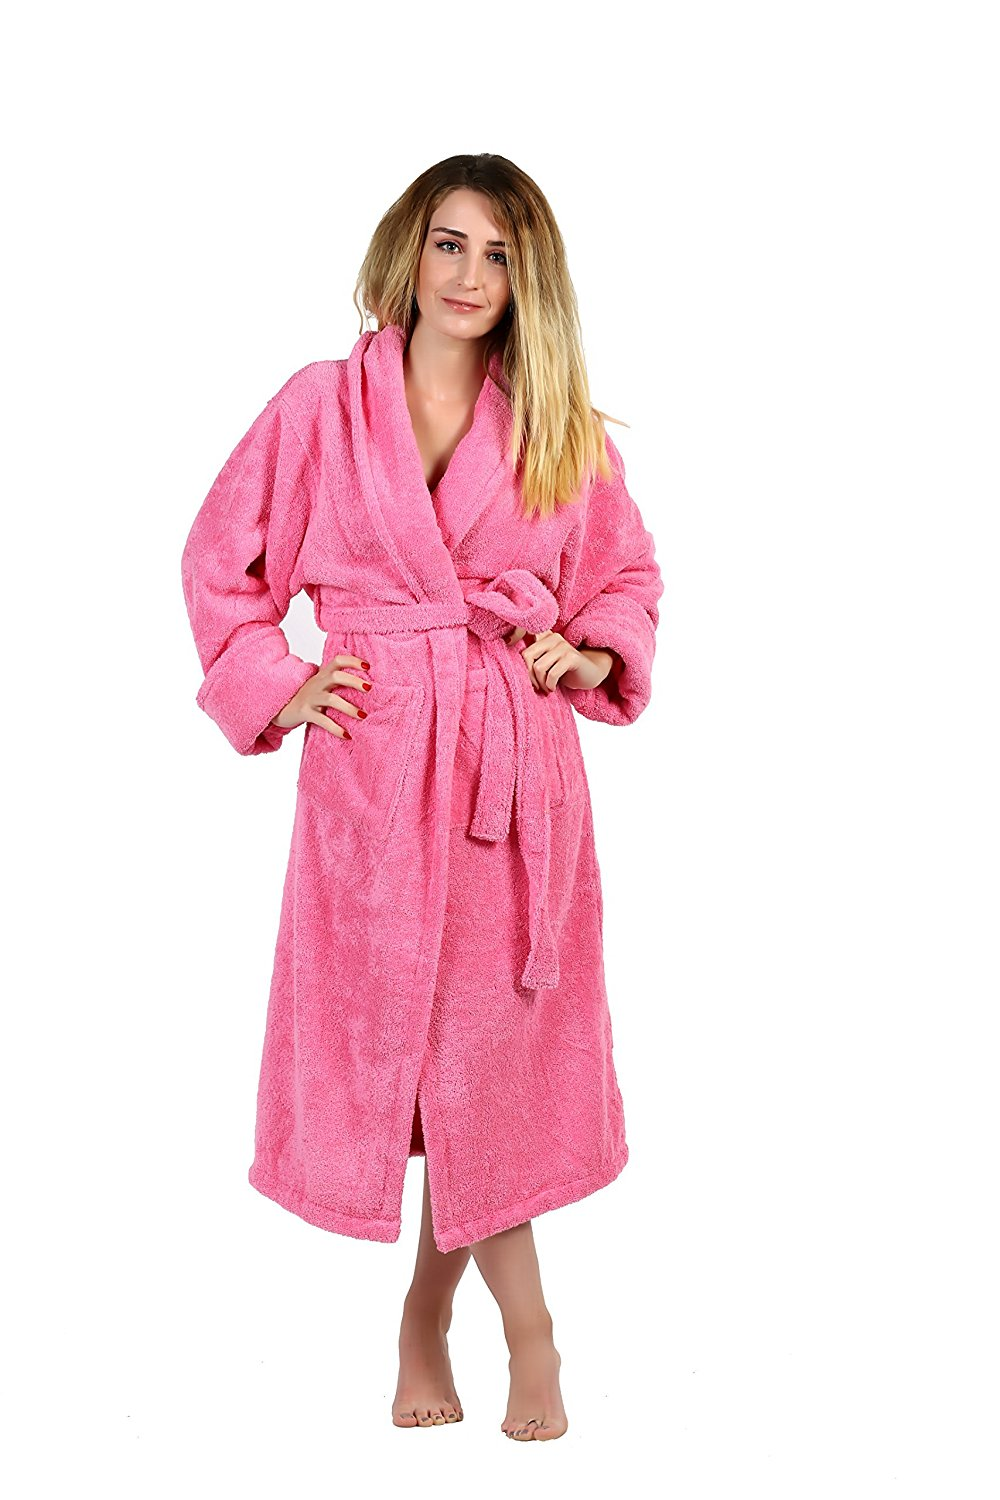 21275e72d2 Get Quotations · All Design Towels Pure Turkish Cotton Kimono Terry Shawl  Collar Solid Women s Bathrobes